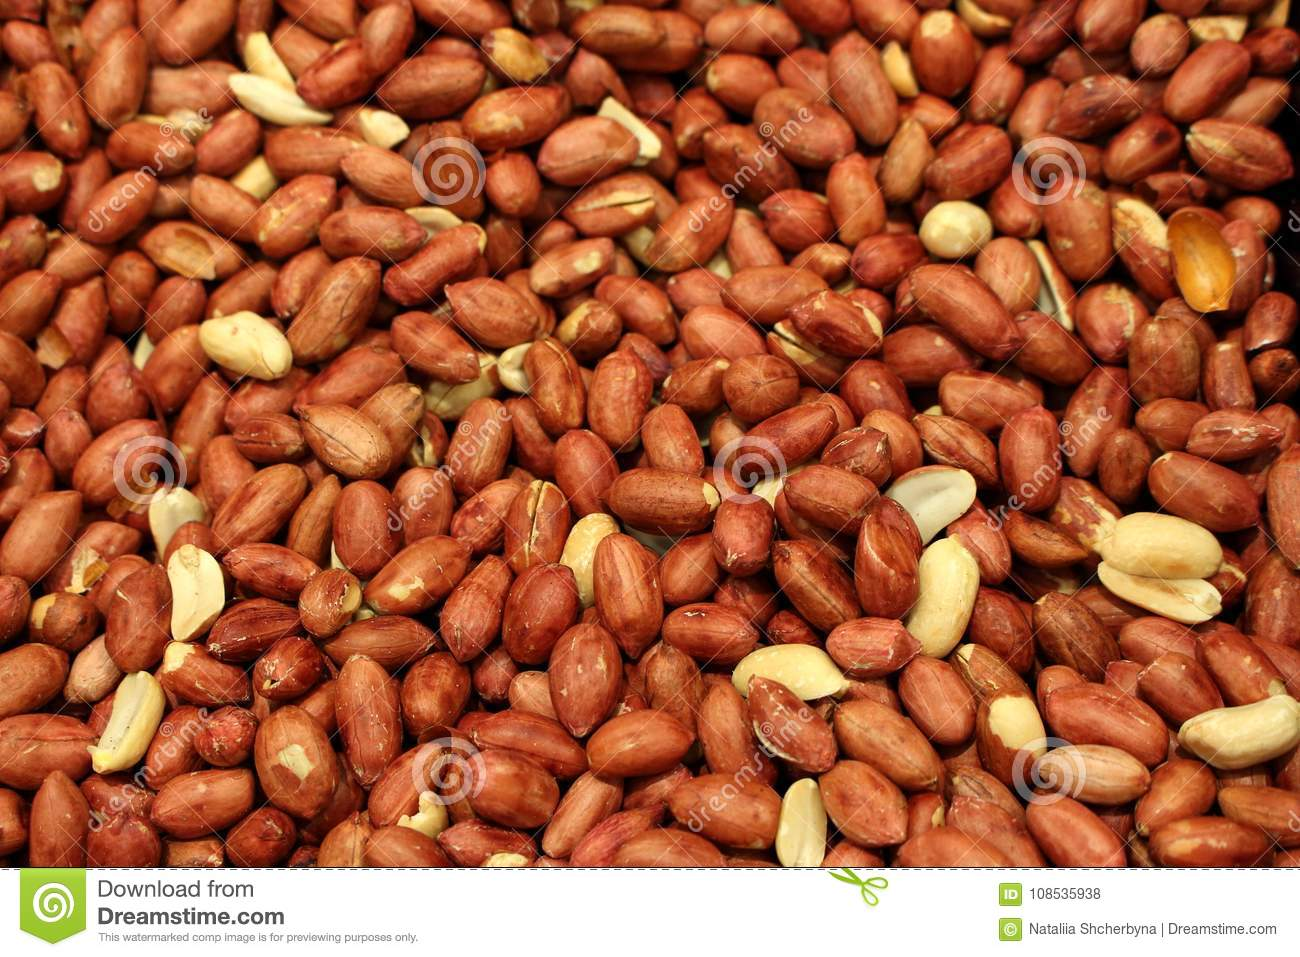 Reliability of firms-producers of seeds. Write, please, the best and worst companies of ours and foreign